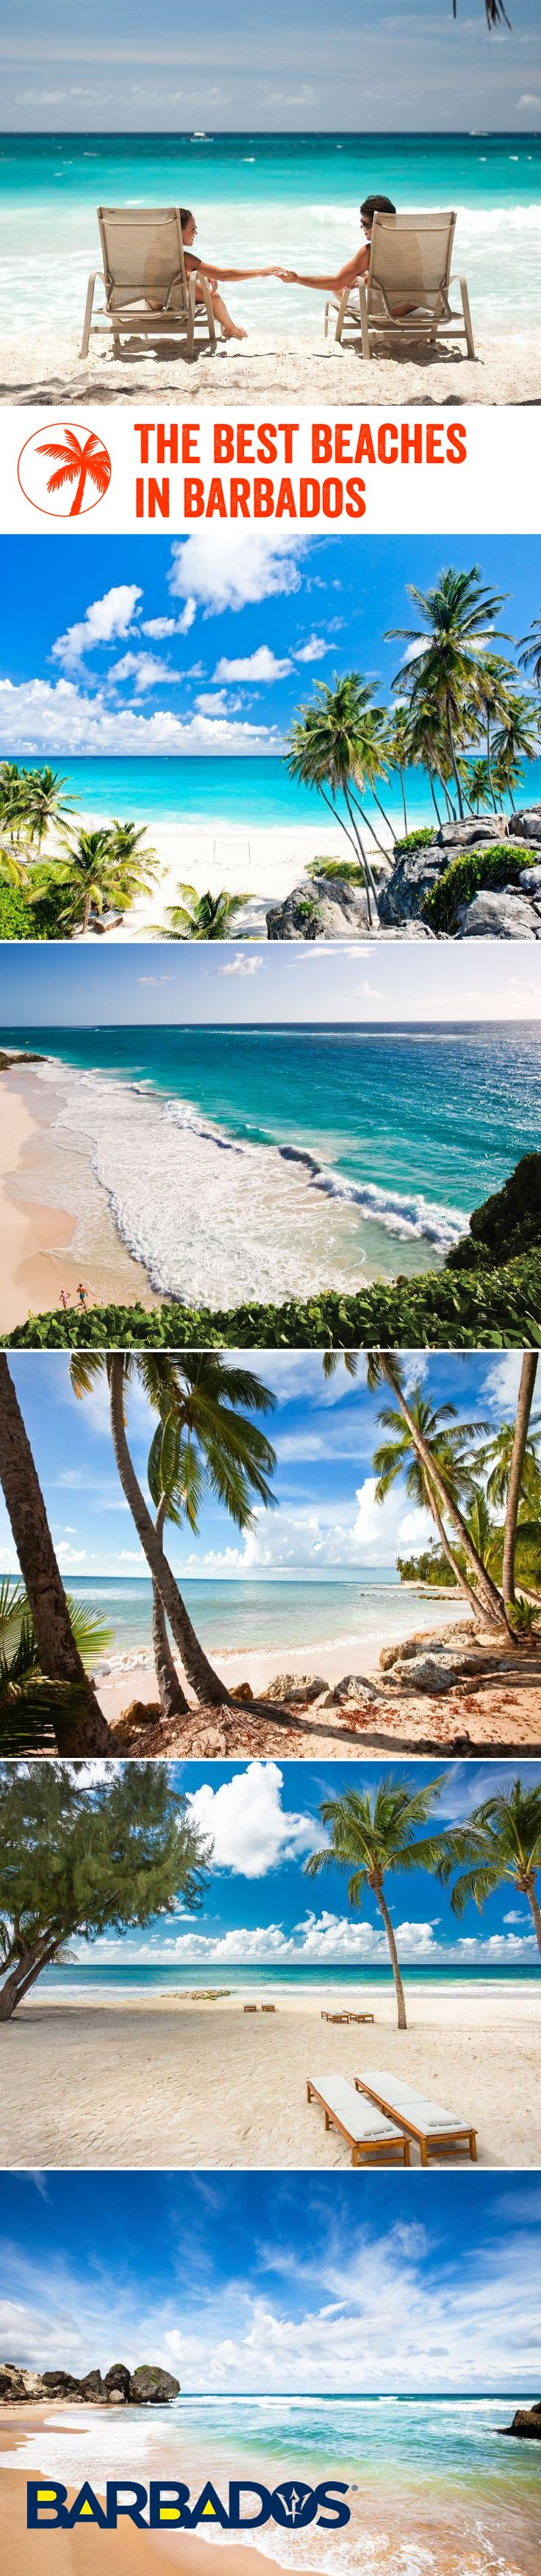 Whether you fancy sunbathing on the sugary sands, pumping adrenaline with exciting water sports, or enjoying a safe family beach day, Barbados has it all